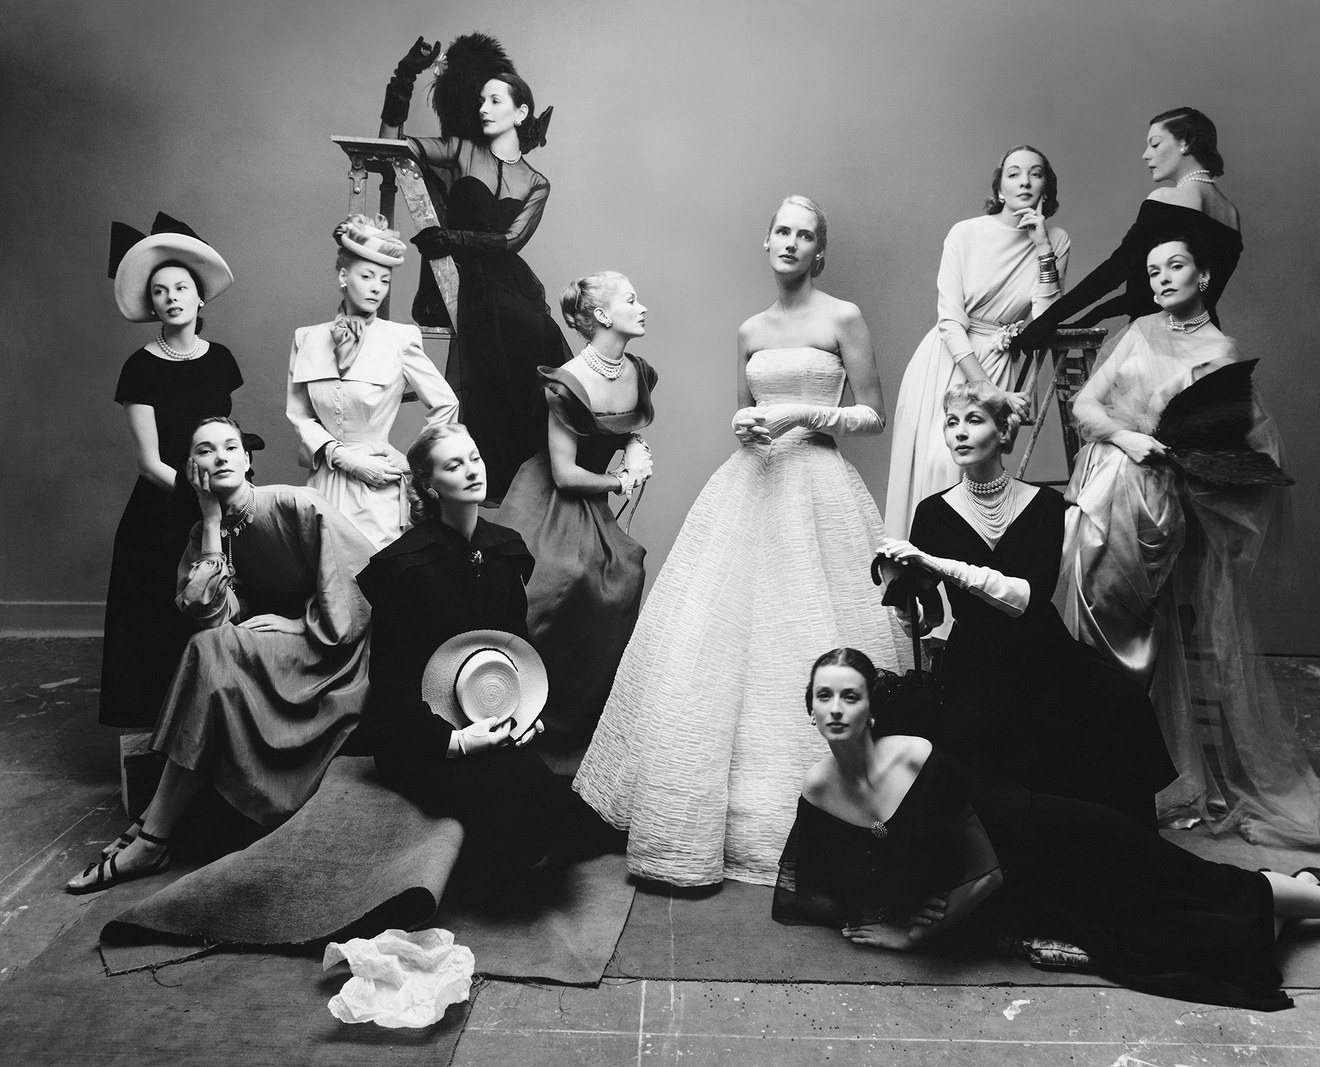 A Beautiful Perspective: Irving Penn